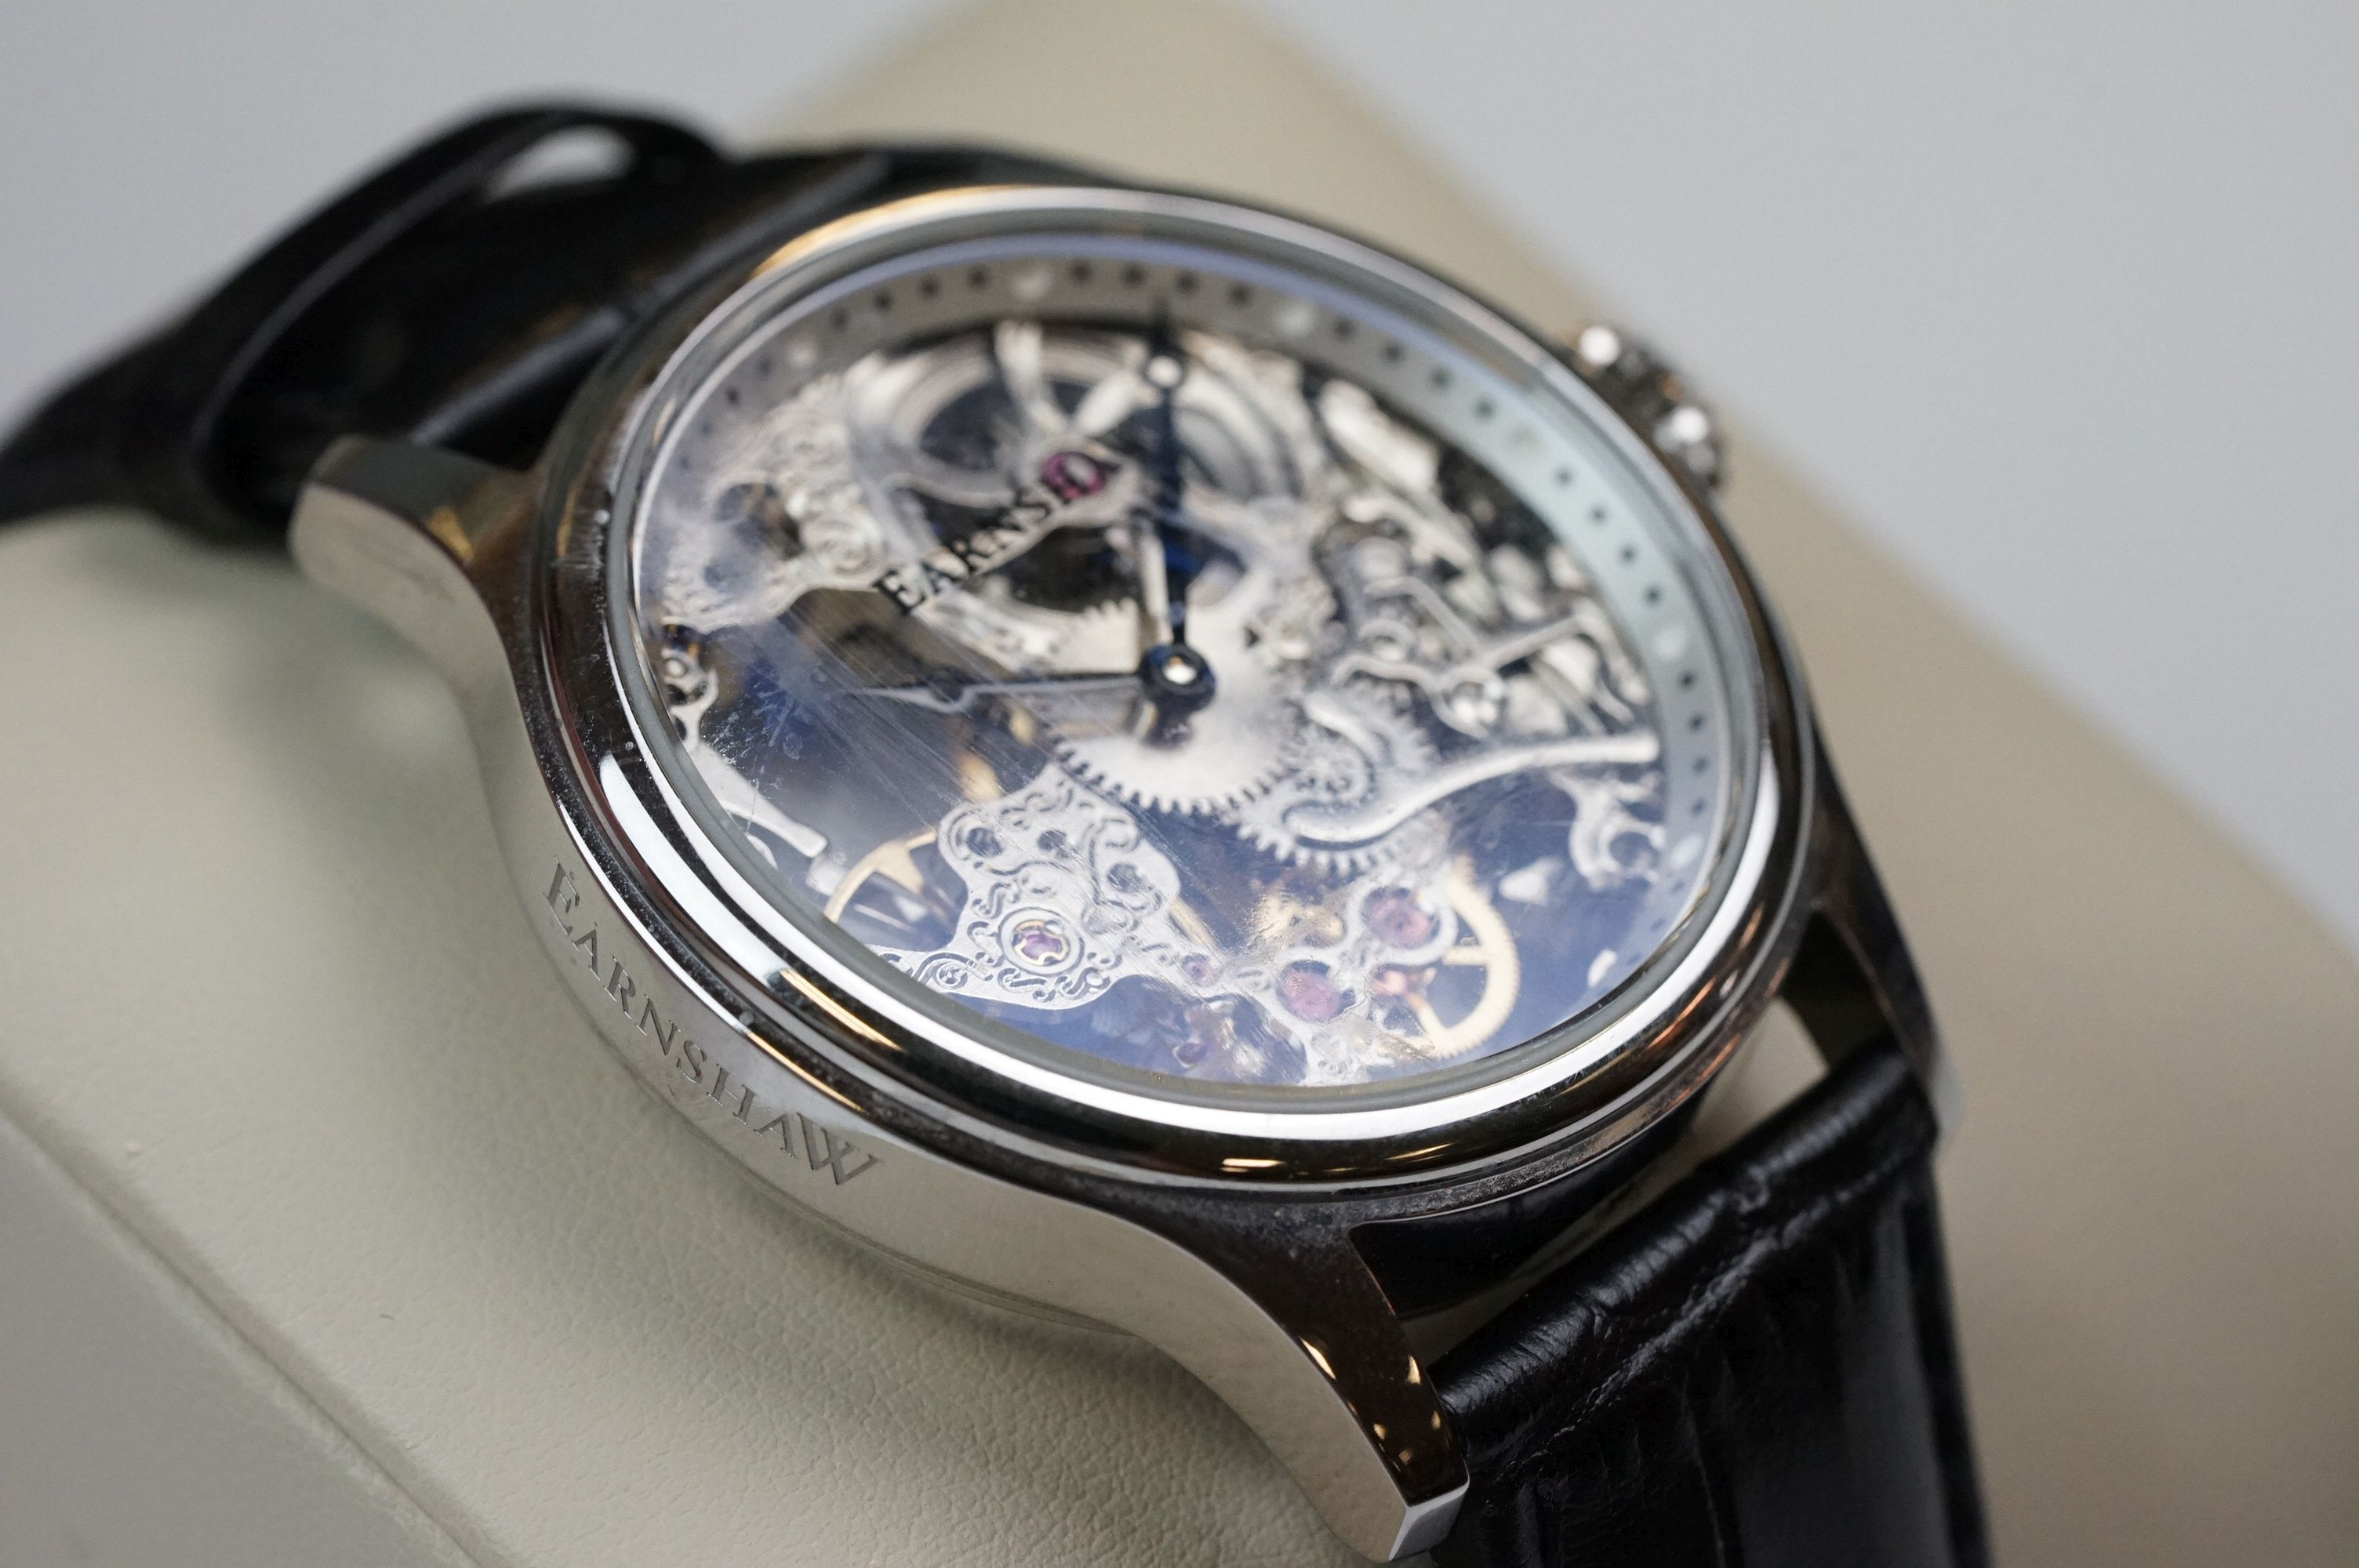 Earnshaw Gents wristwatch, skeleton face and dial, WR 5 ATM 8049, together with paperwork, box and - Image 4 of 9